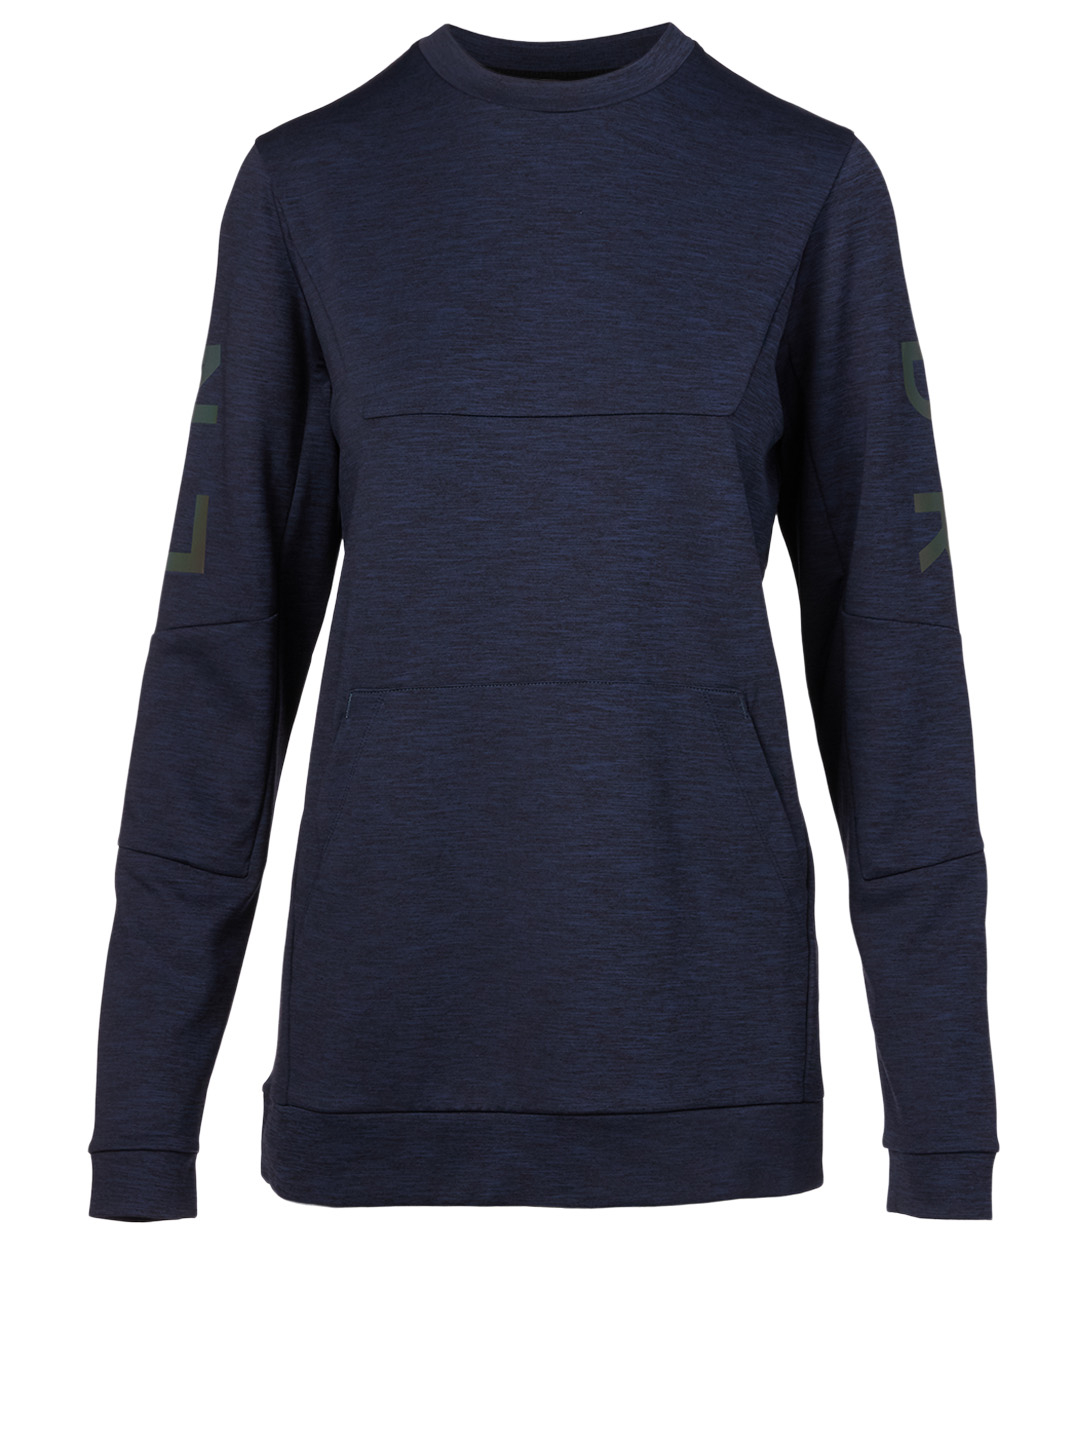 LNDR Solar Sweatshirt Women's Blue